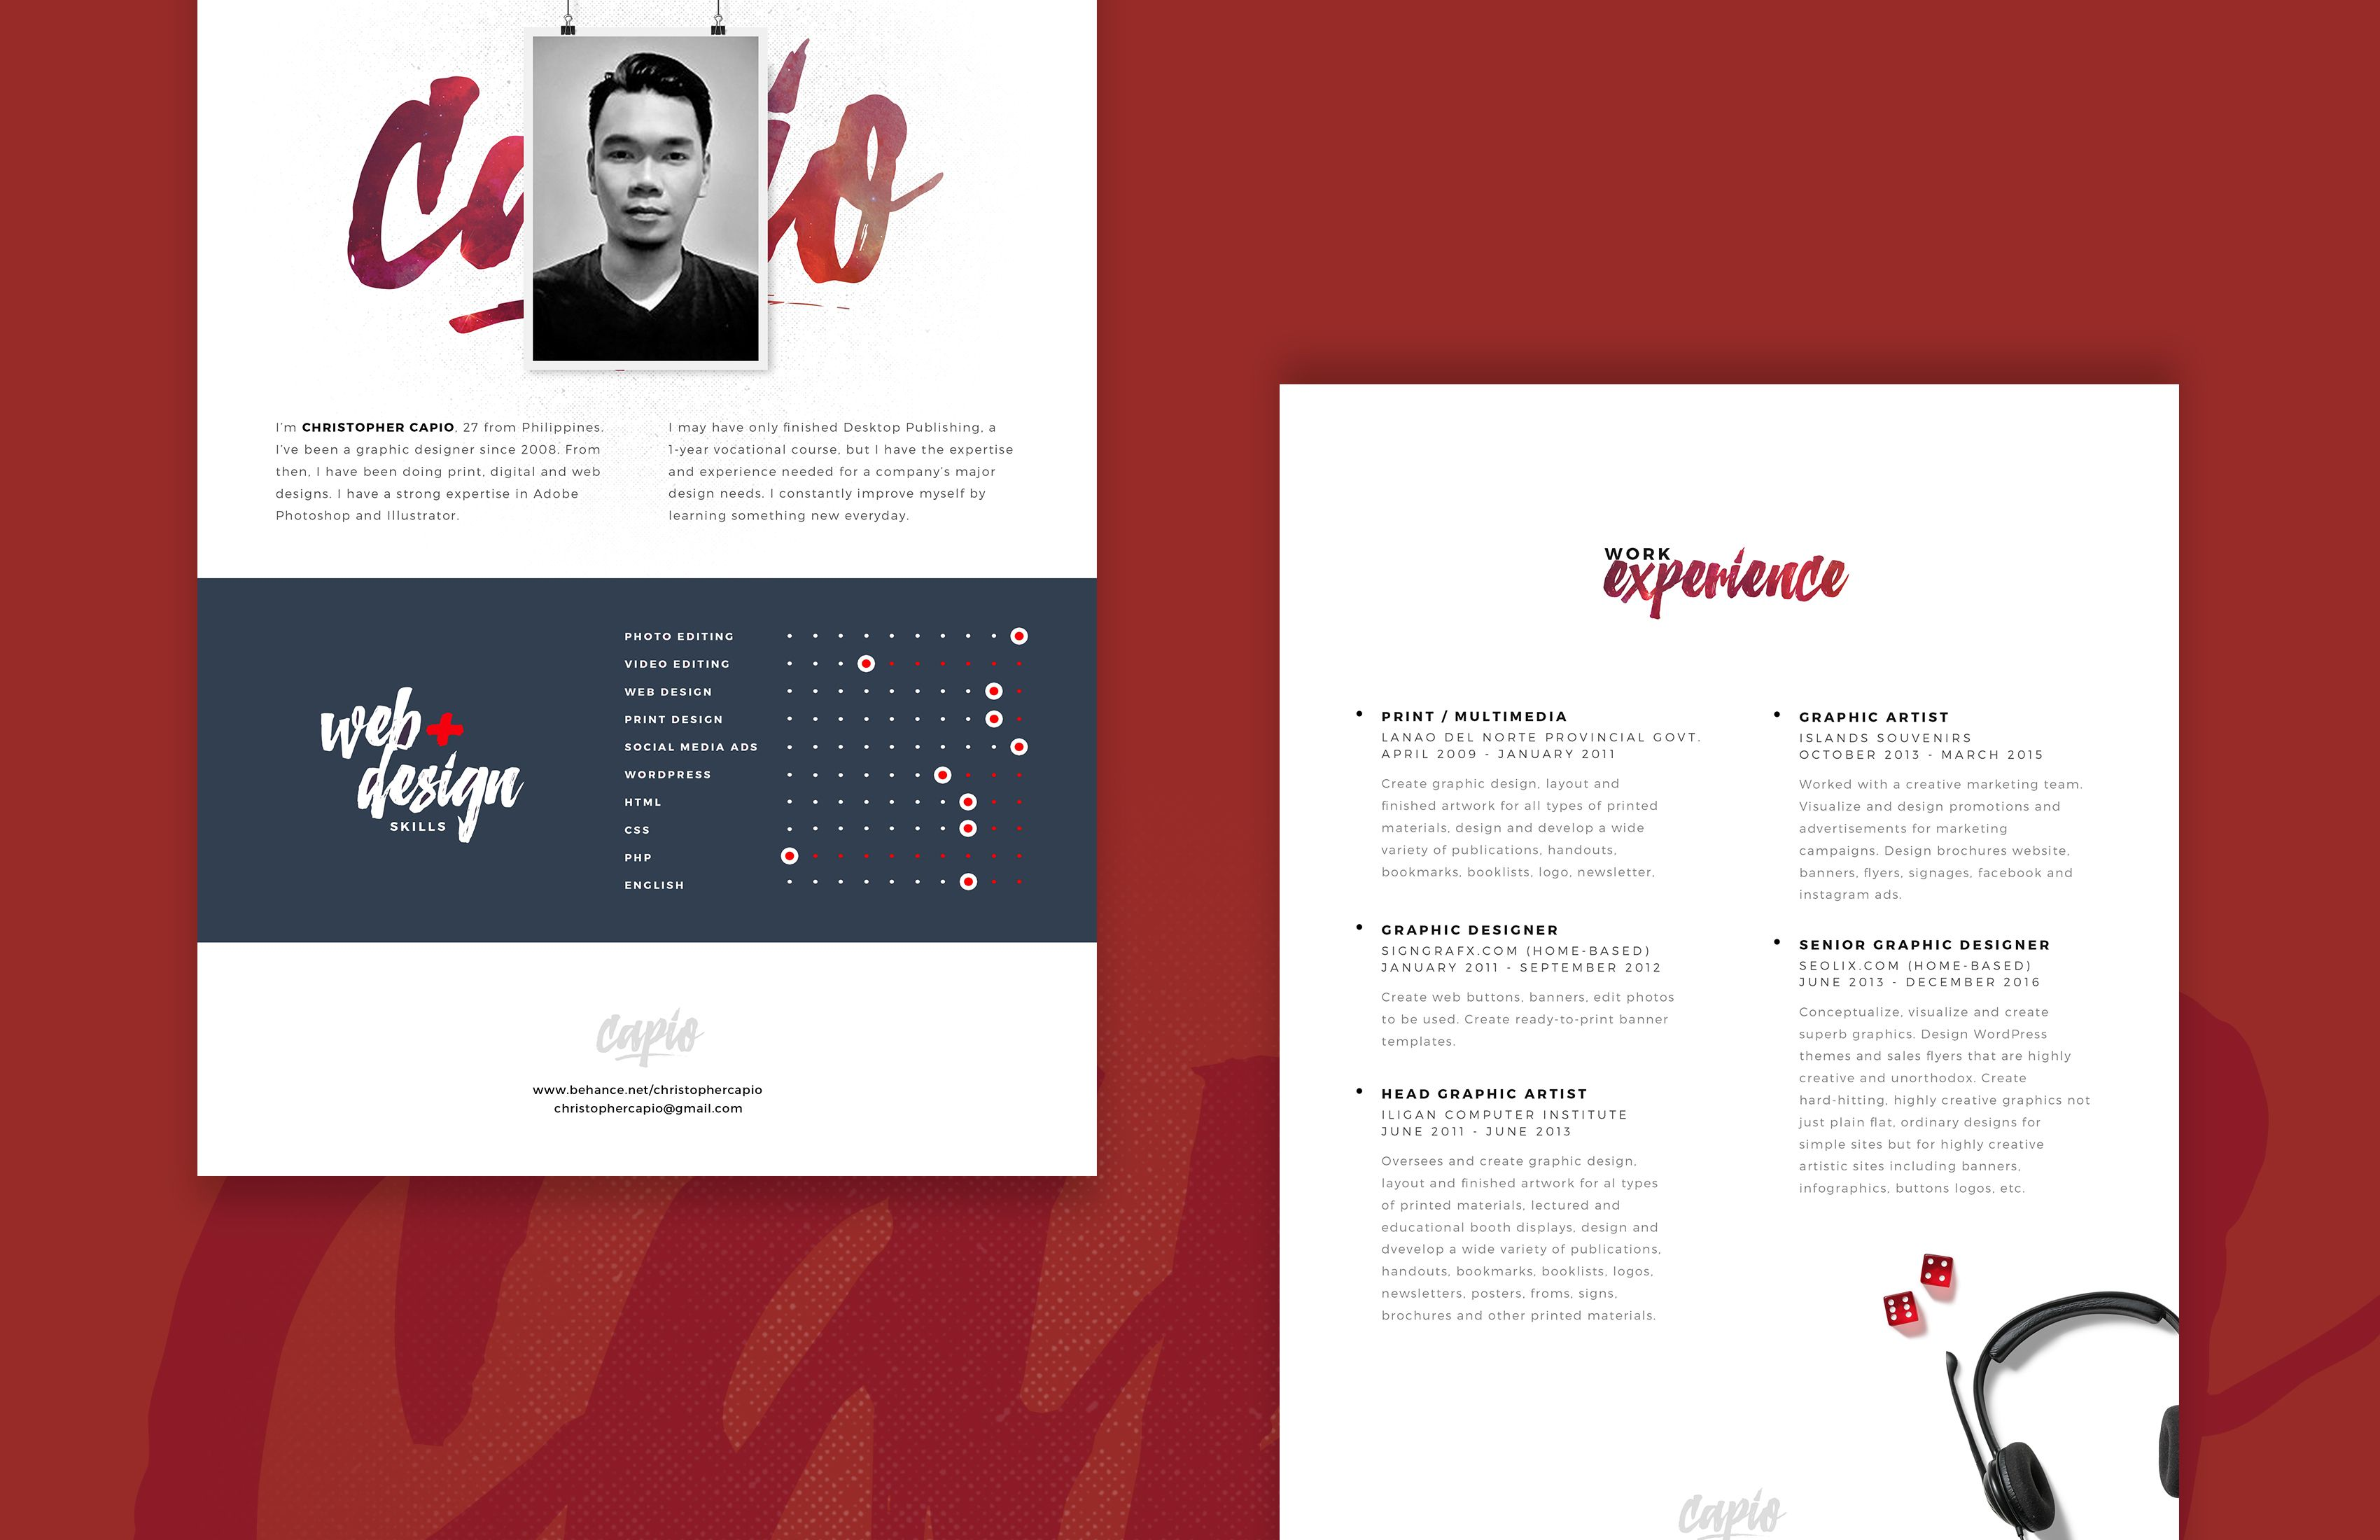 Nice Web Designer Resume Template Free Psd Download Web Designer Resume Template Free Psd A Minimalistic Resume Template You Can Use To Make An Impression On